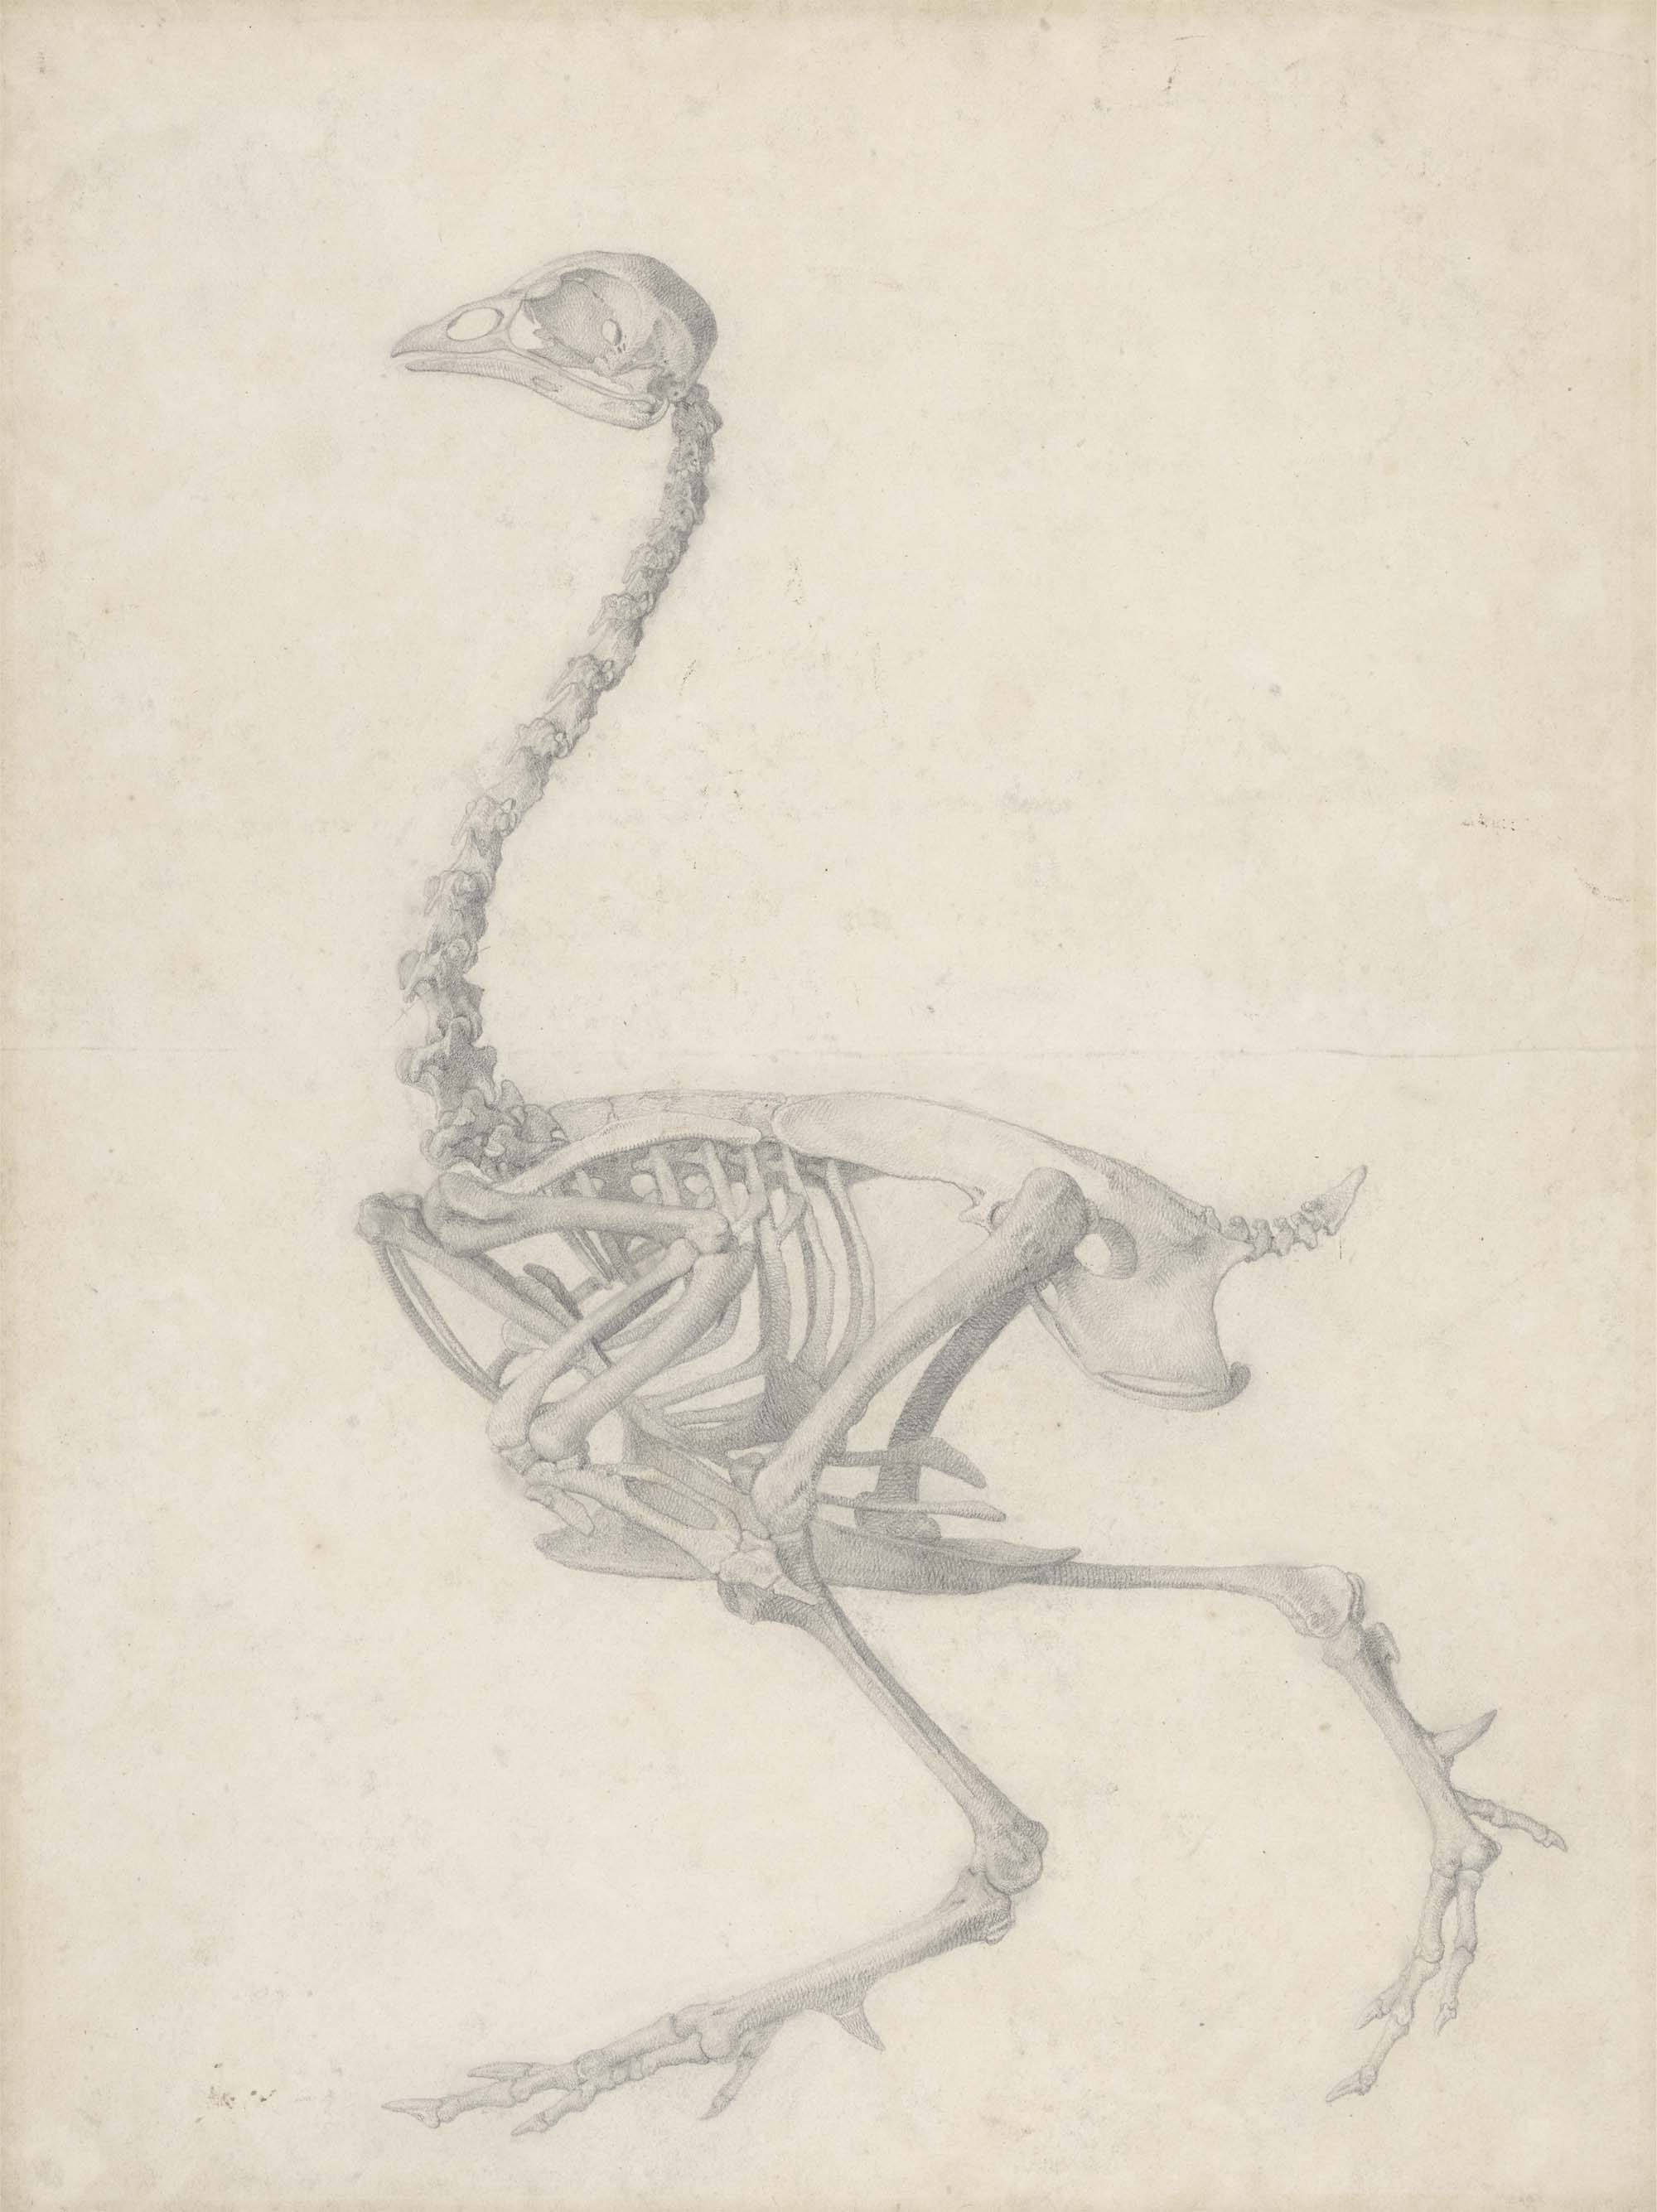 a side view drawing of the skeleton of a birdfowl